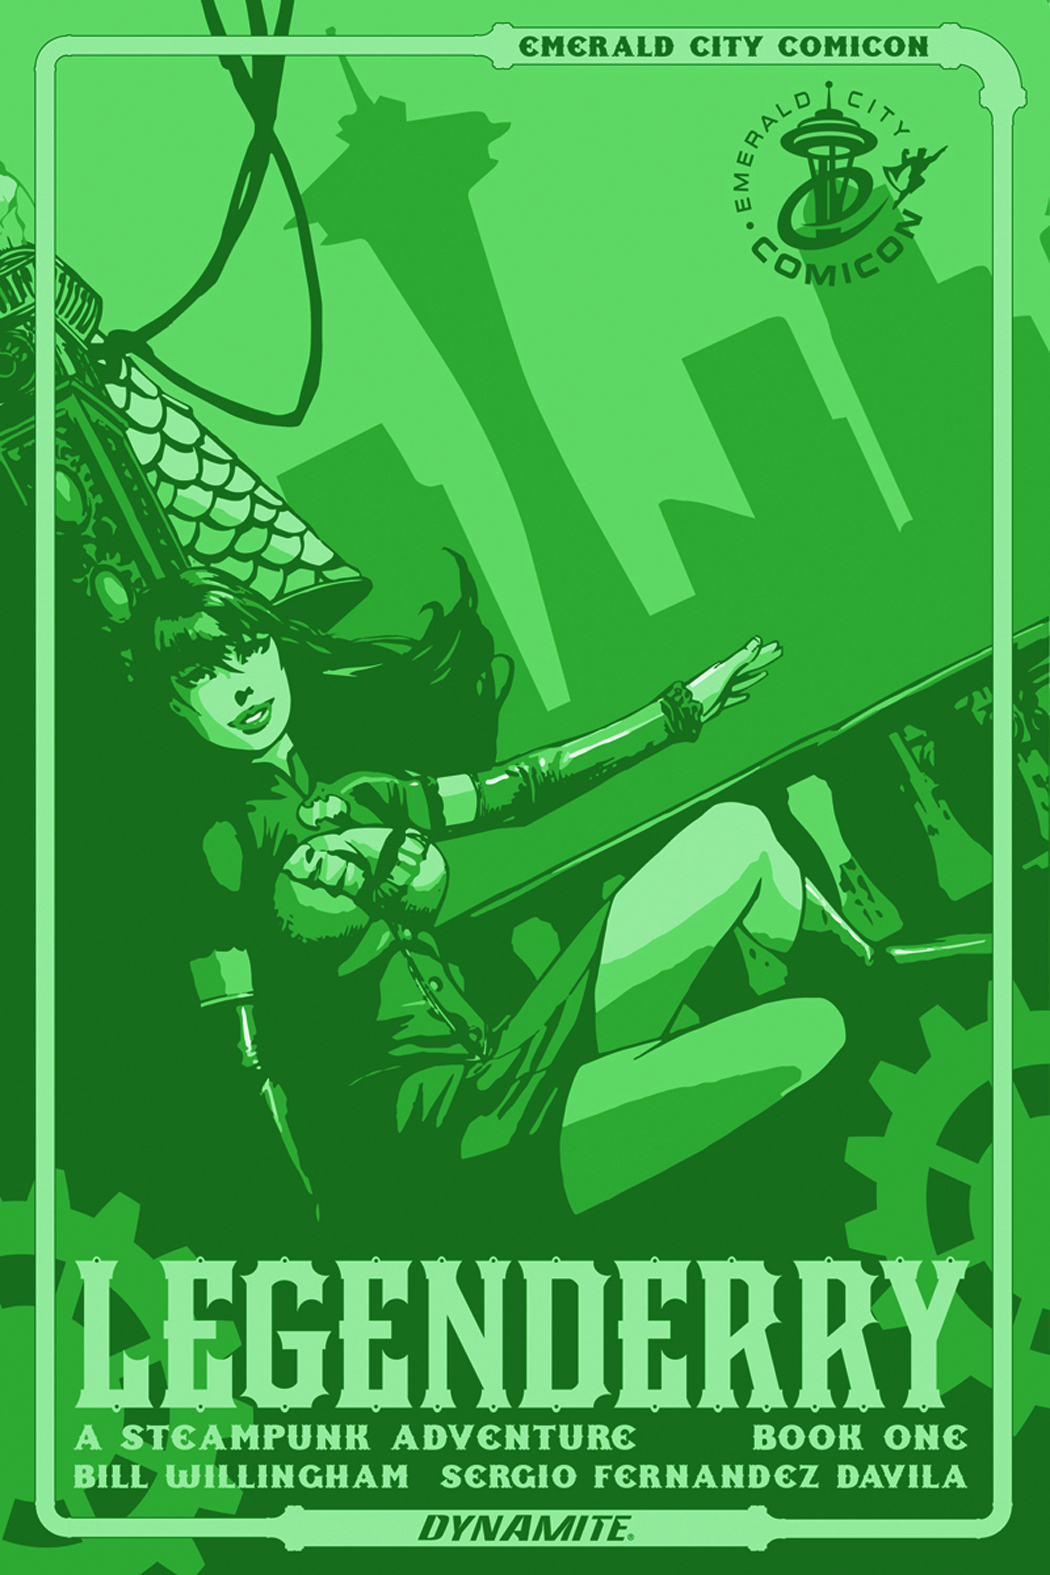 LEGENDERRY A STEAMPUNK ADV #1